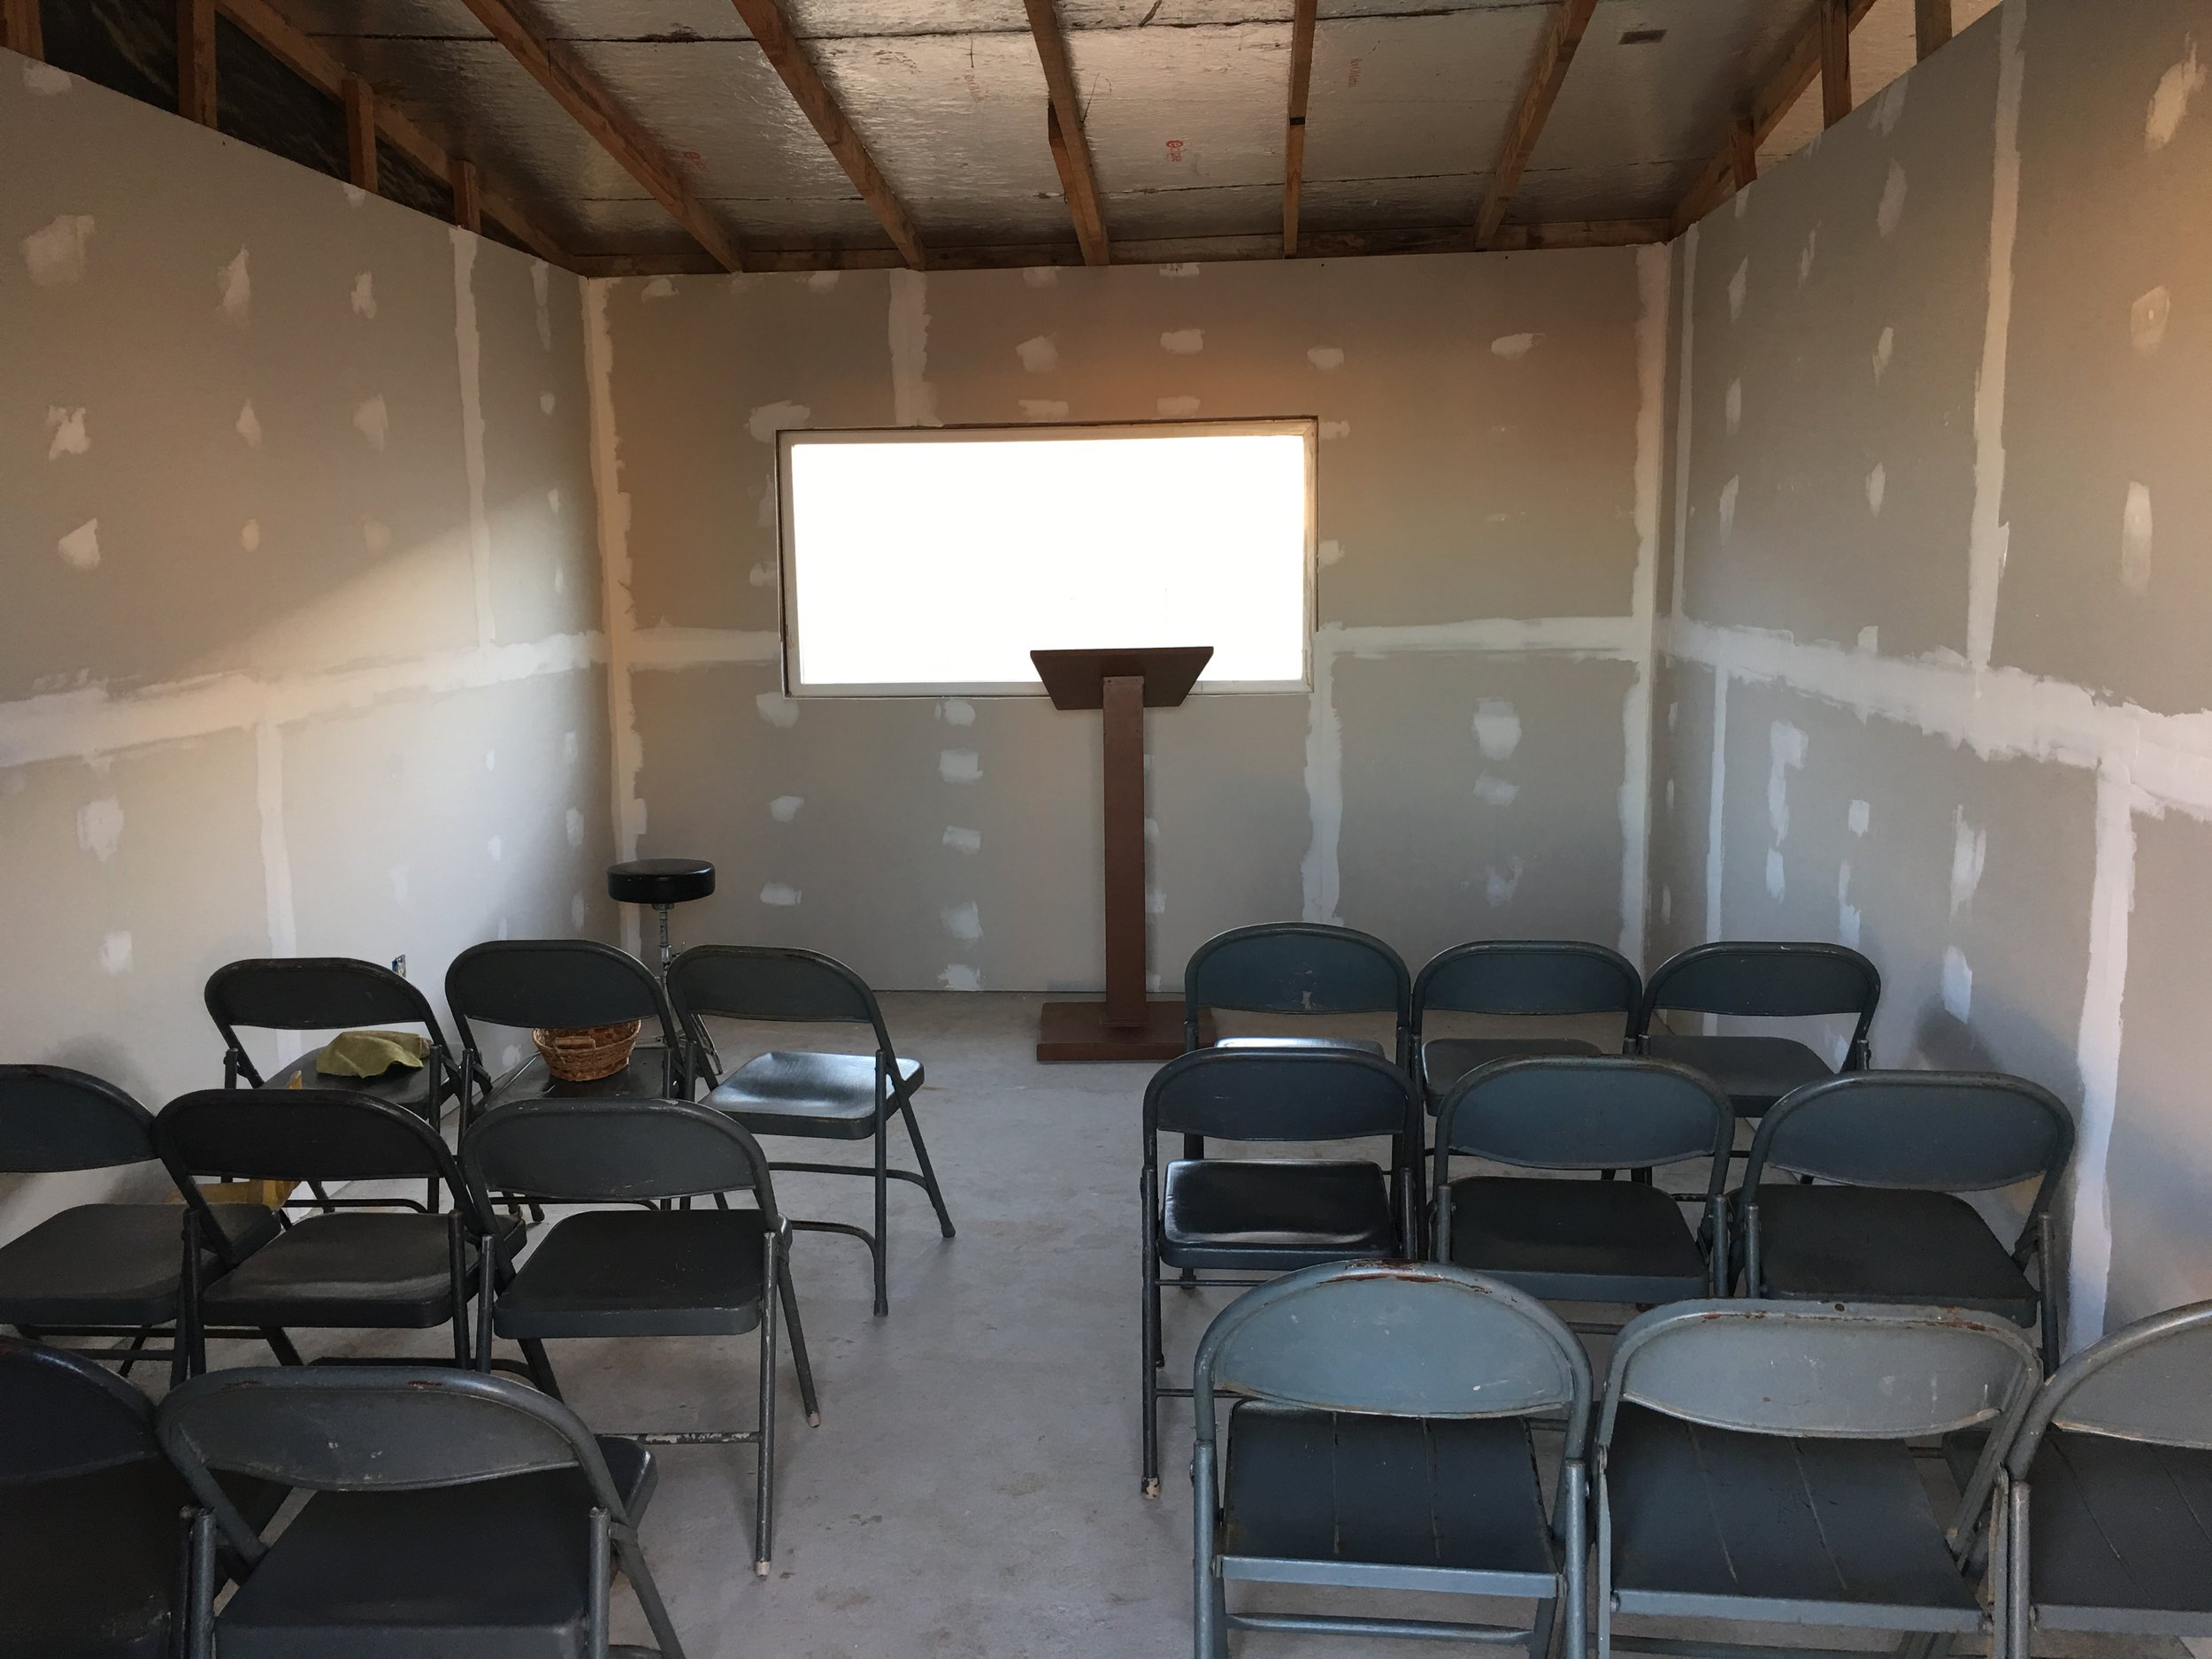 2016-01 Guerrero Negro classrooms finished.JPG